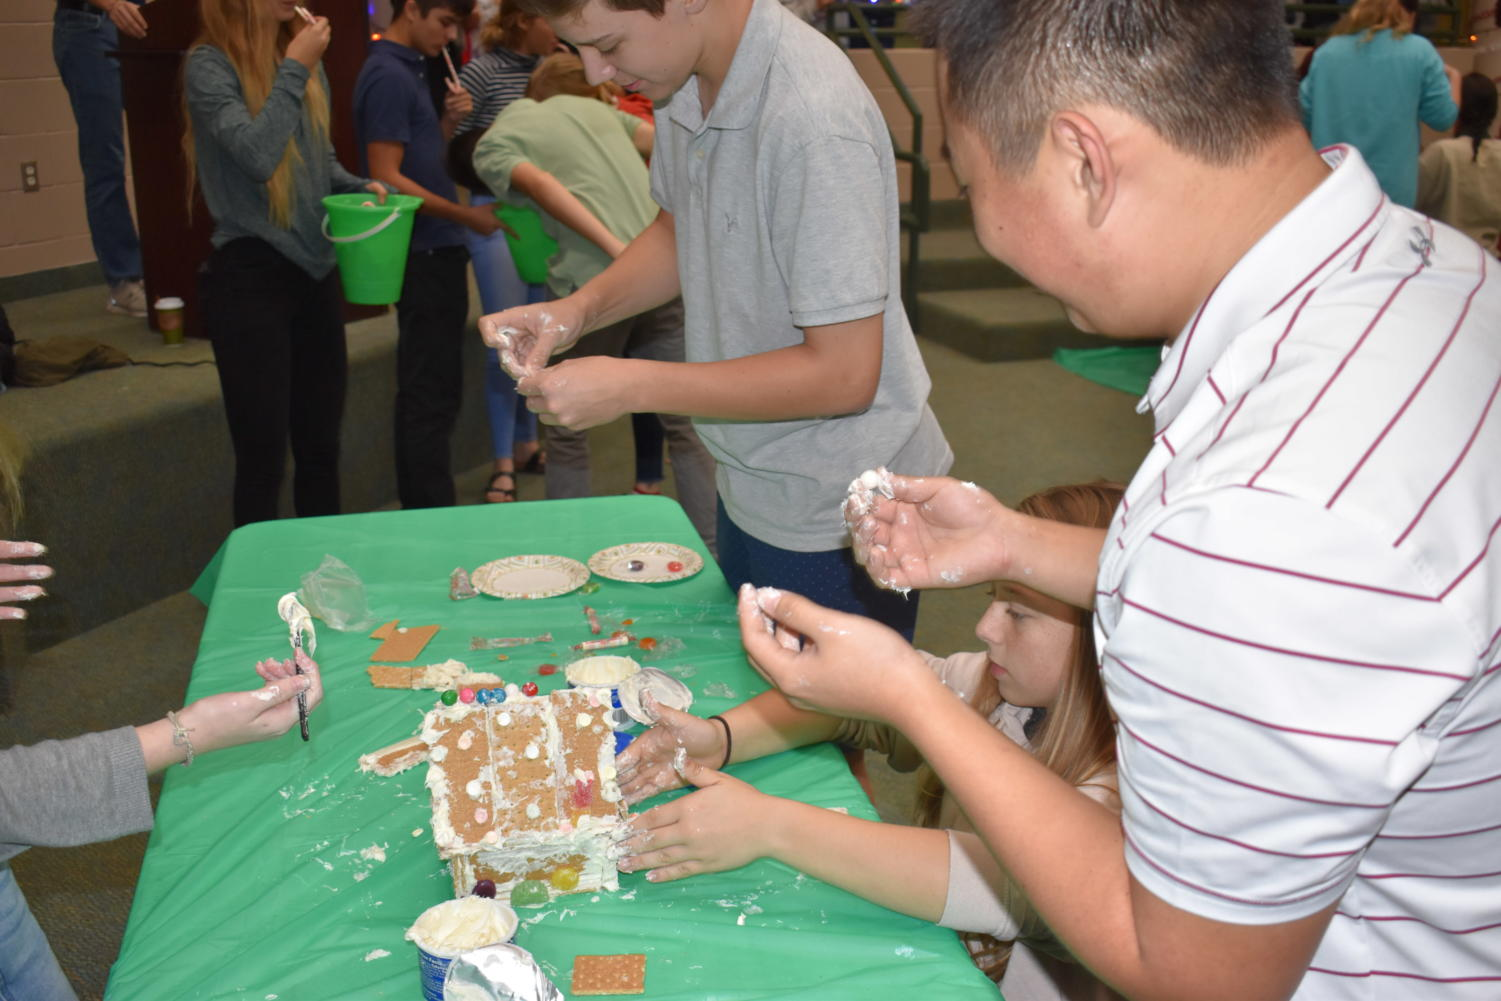 The+freshman+gave+it+their+all+constructing+their+gingerbread+house.